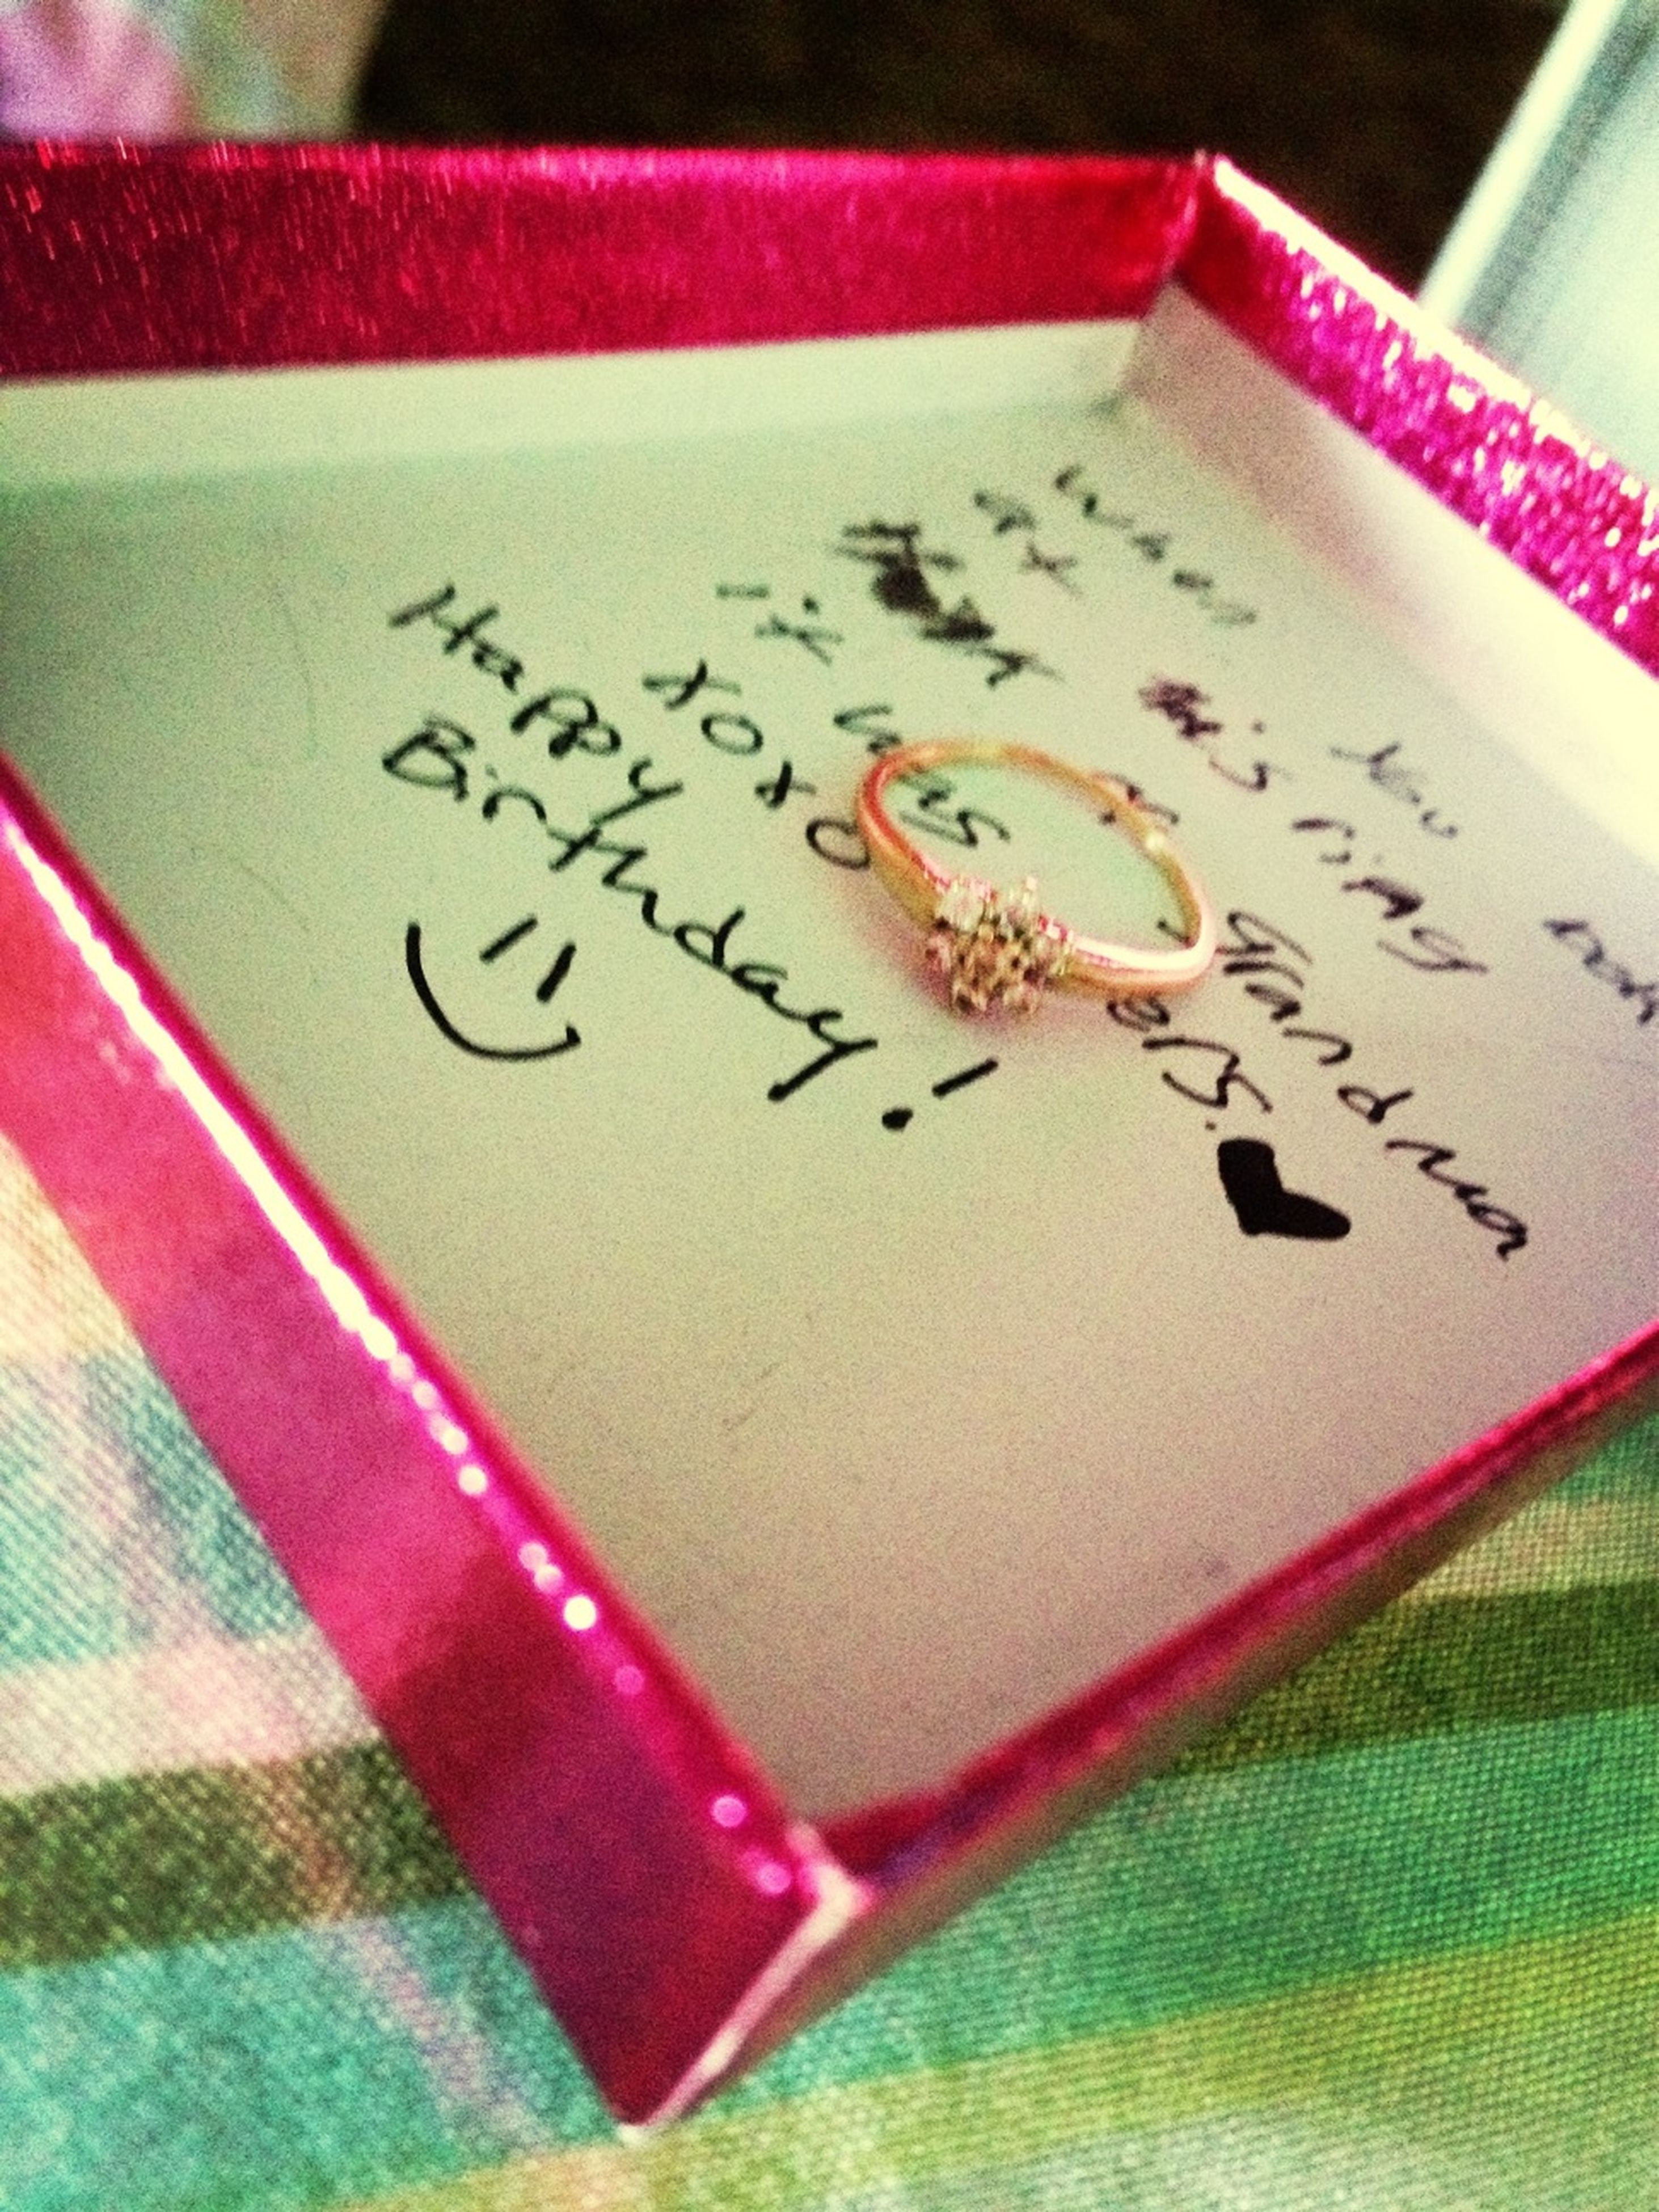 indoors, text, still life, table, communication, western script, paper, close-up, book, education, high angle view, handwriting, art and craft, no people, selective focus, page, creativity, art, pink color, pencil